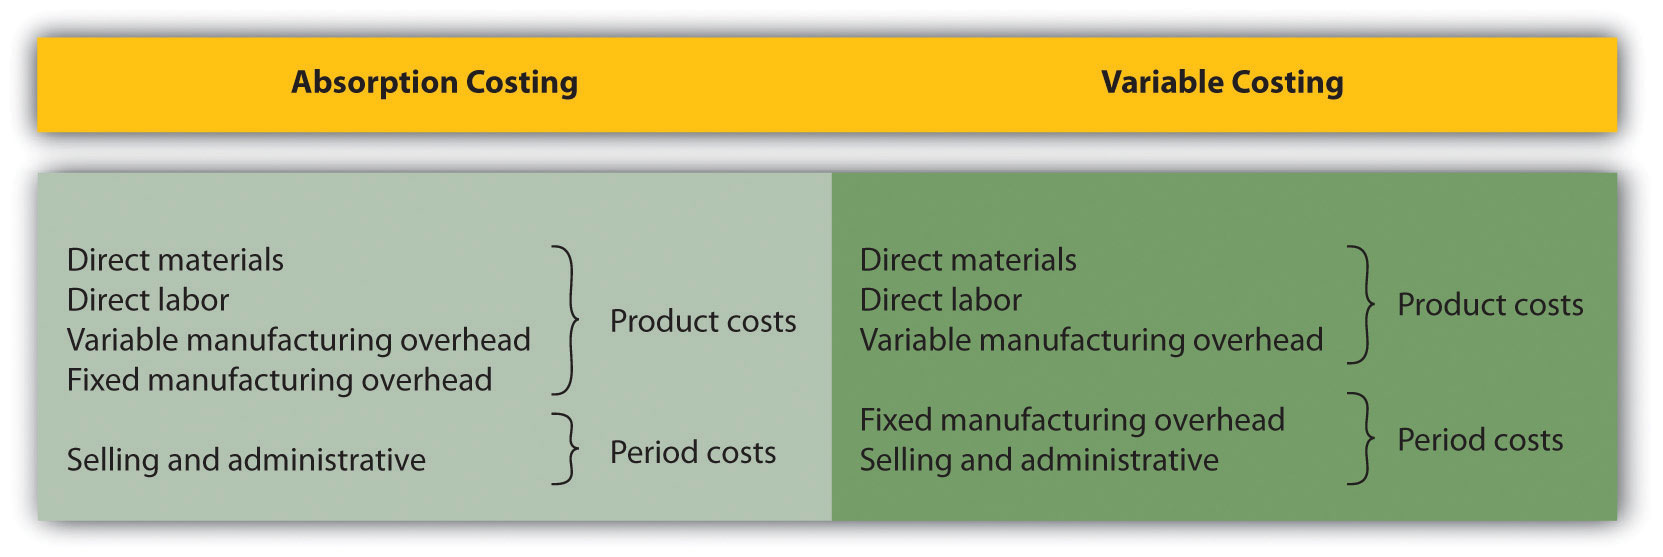 cost accounting management decisions The remaining parts of the book deal with decision making and how management and cost accounting data can support managers in this task a comparison of absorption costing and variable costing introduces the reader to management decisions such as product portfolio and outsourcing decisions additionally.